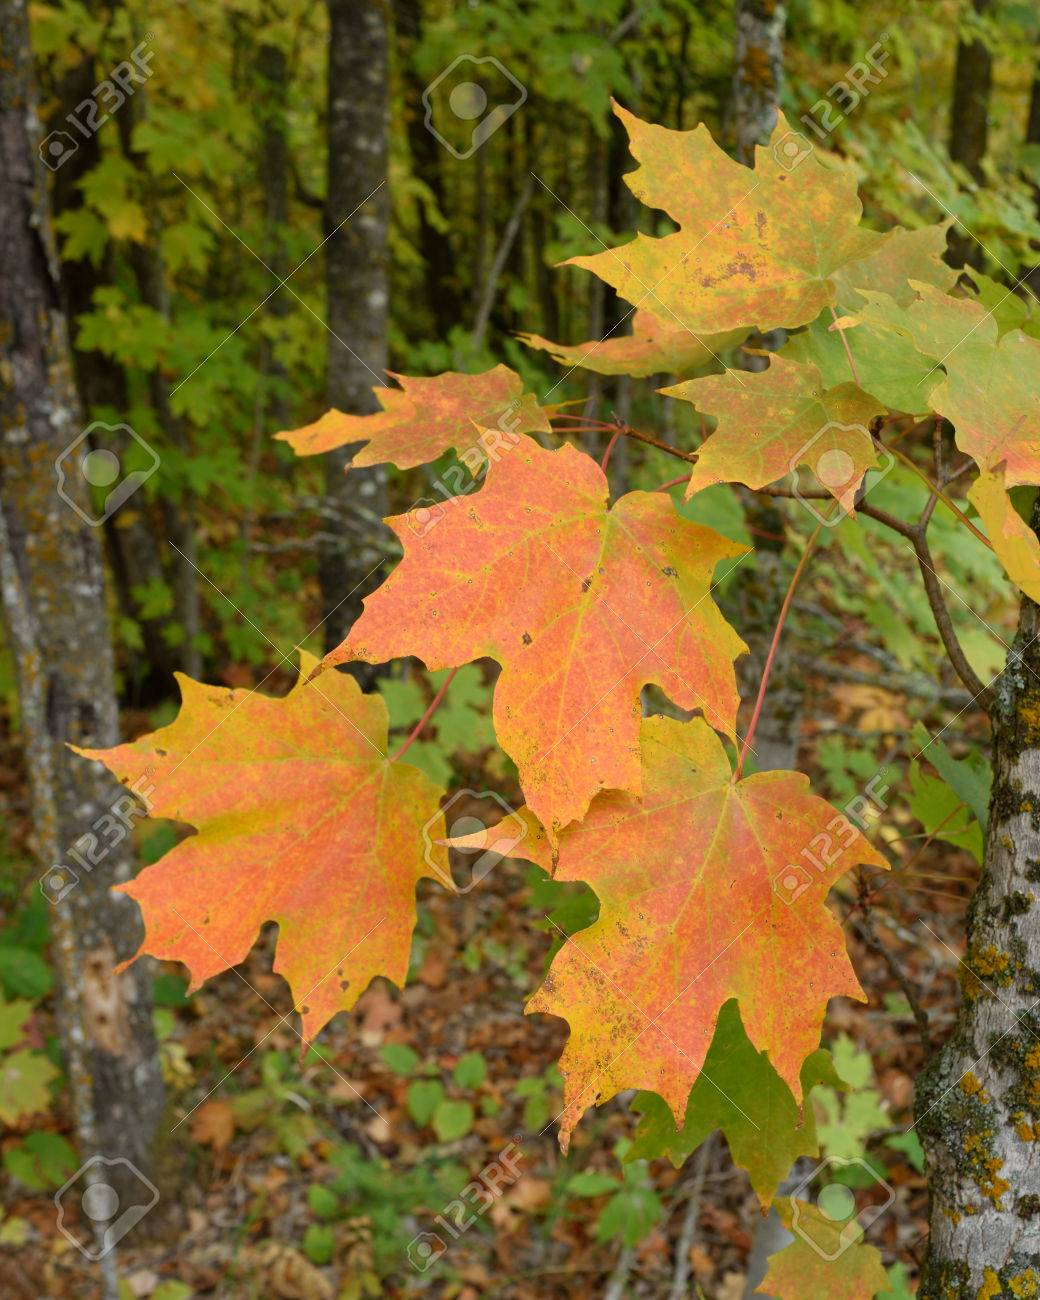 Sugar Maple Acer Saccharum With Colorful Fall Leaves Stock Photo